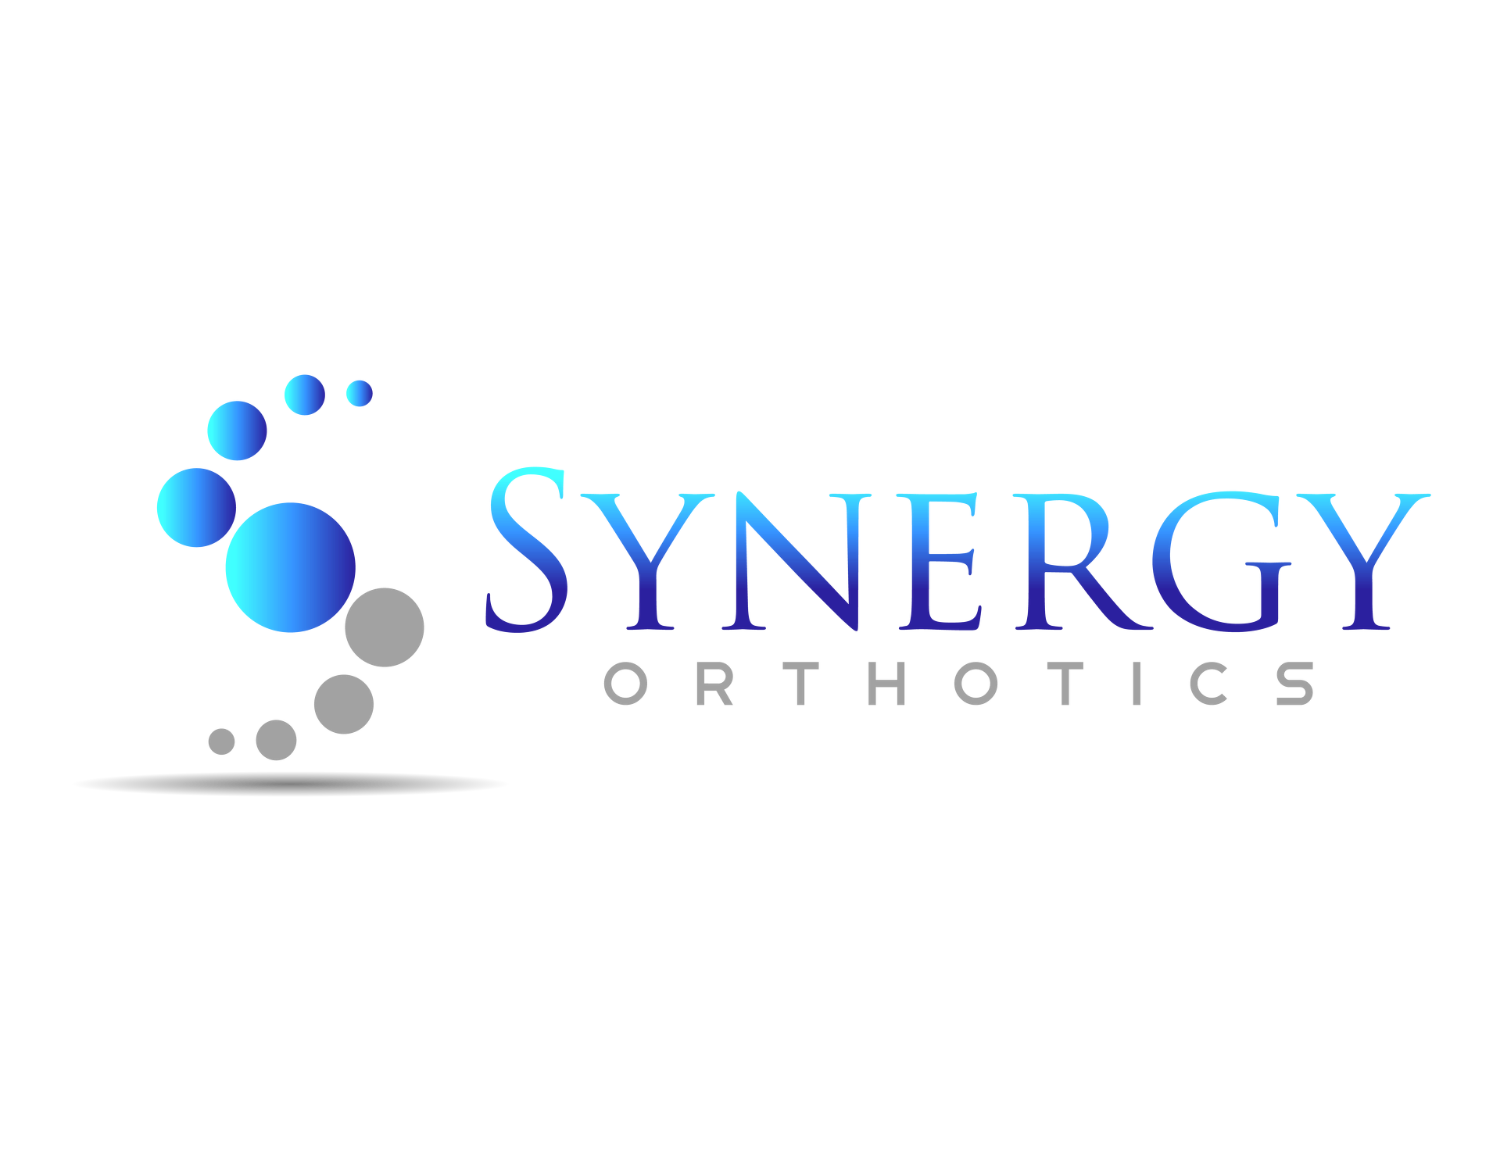 Synergy Orthotics-01.png 2015-12-6-21:2:44